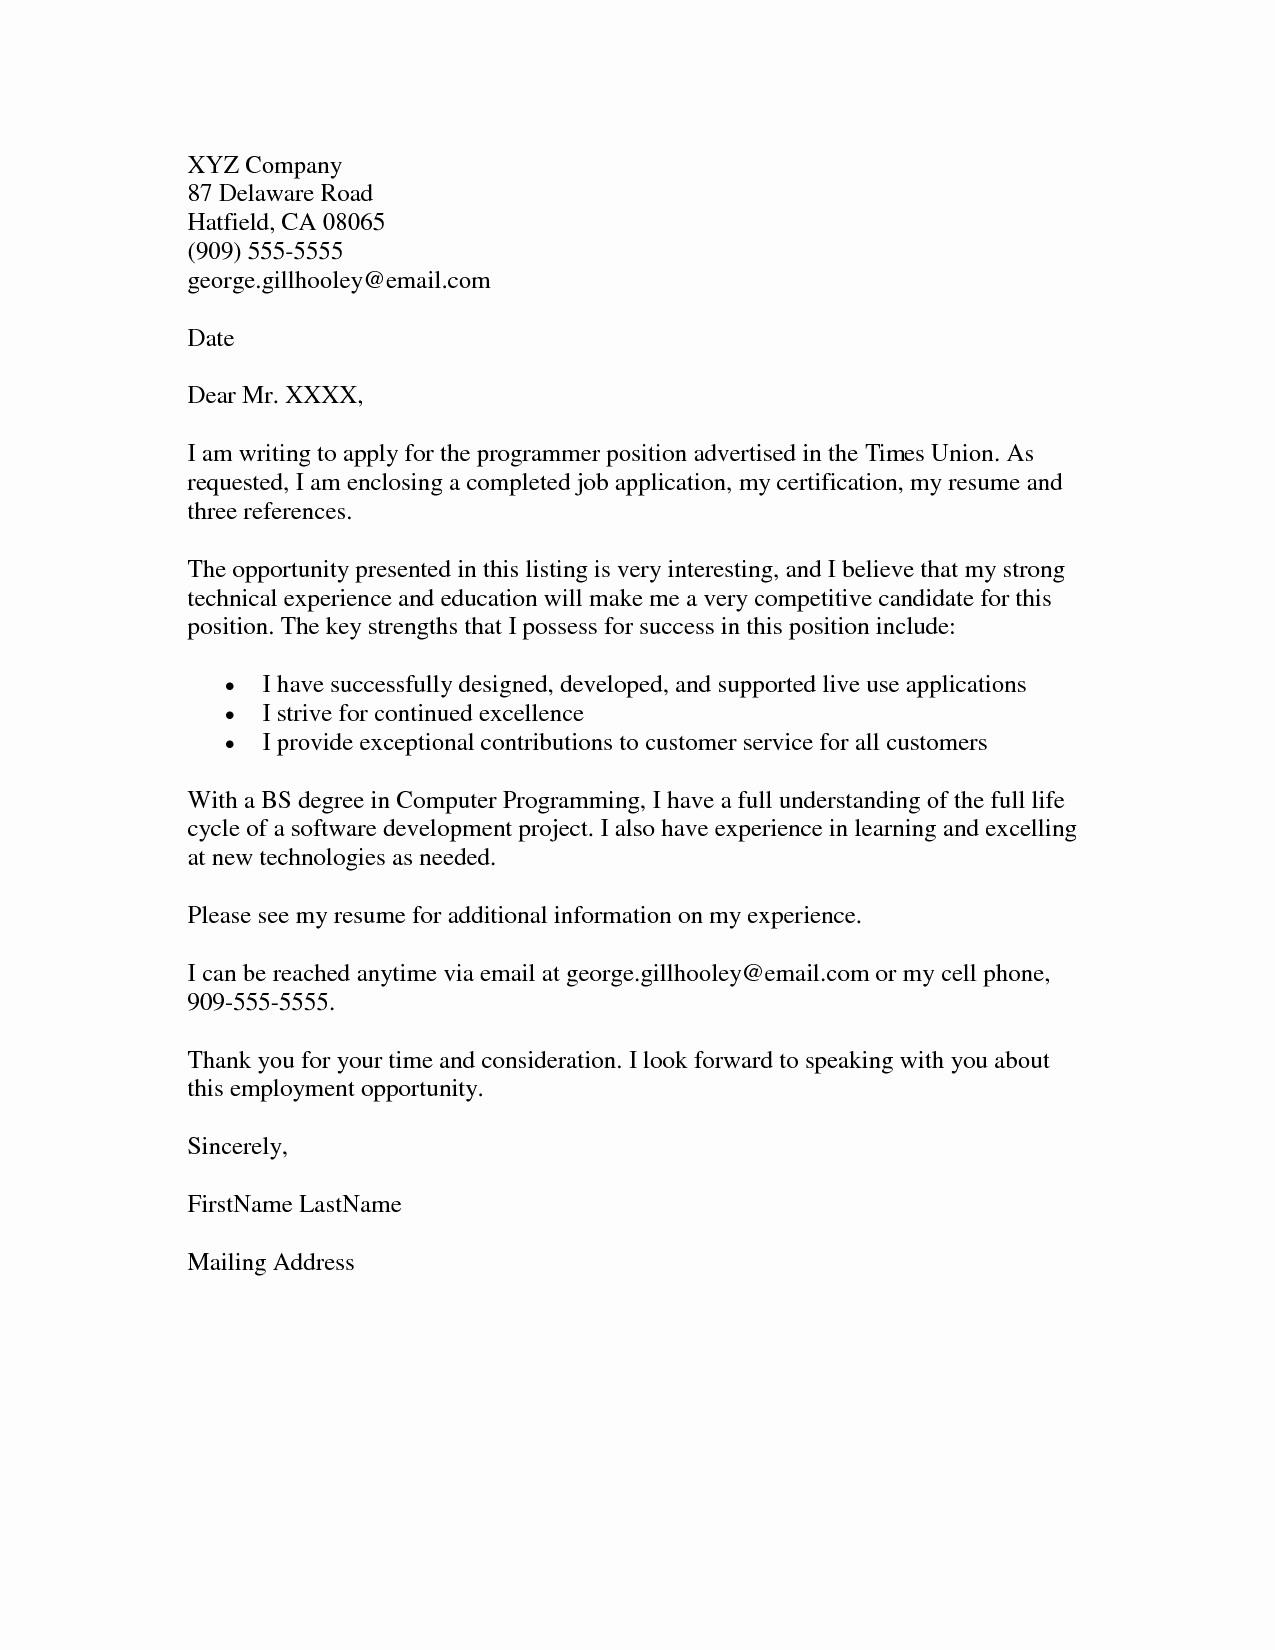 Job Application Cover Letter Example Resumes